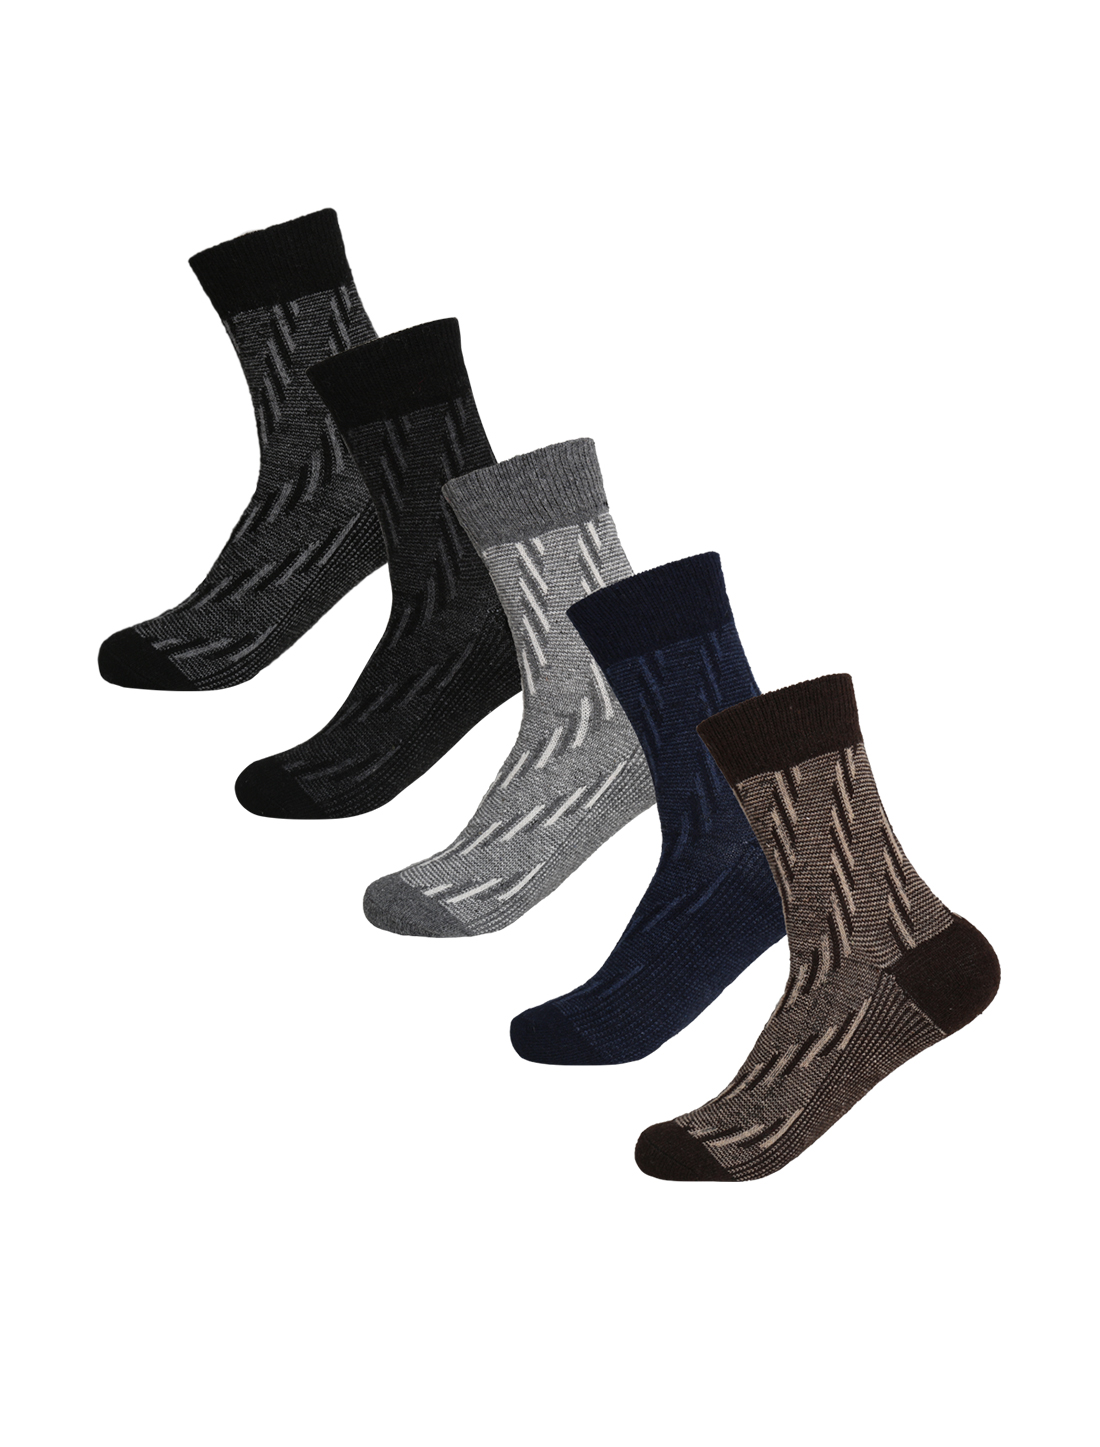 Men 5 Pack Stripes Pattern Thermal Wool Crew Socks 10-12 Assorted-Stripes